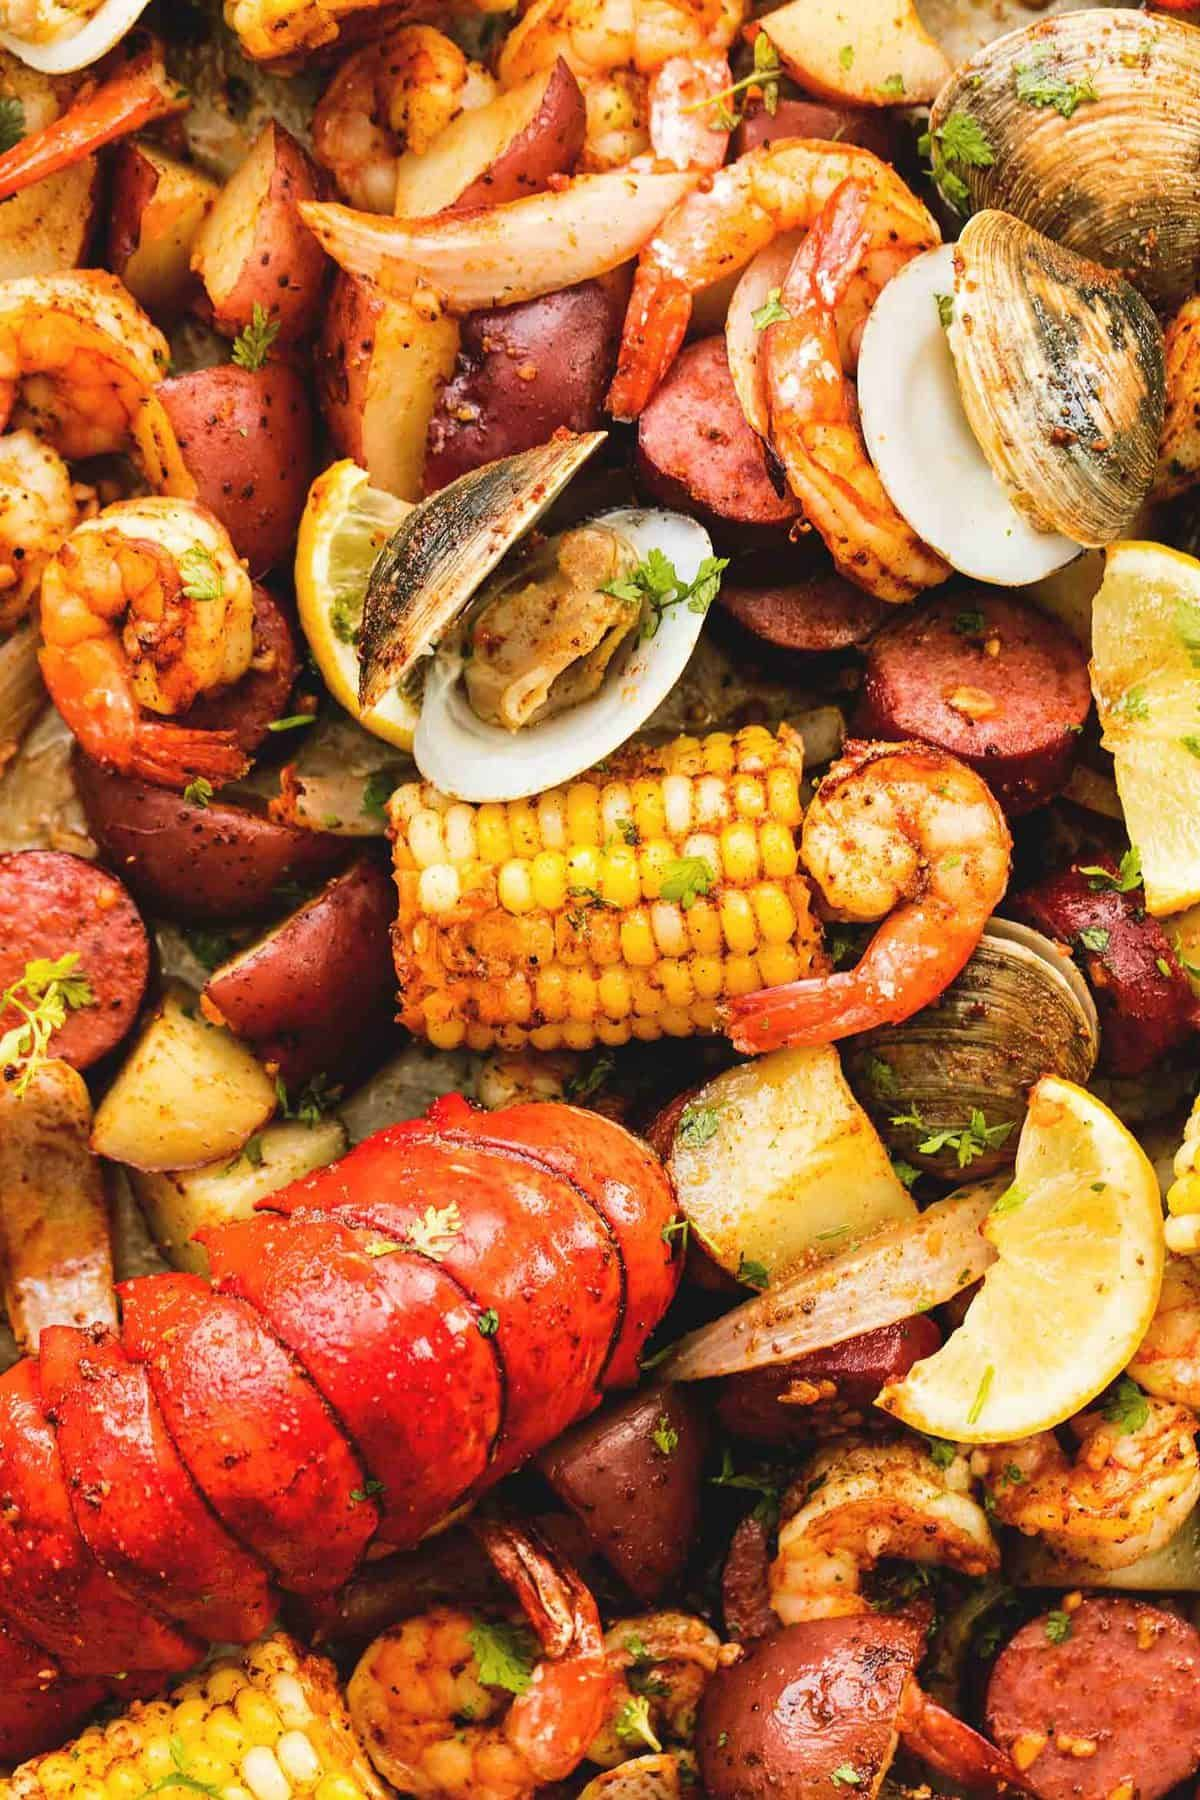 Sheet pan clambake with flavorful shrimp, sausage, lobster tails, clams, and veggies all made on one pan. The easiest, tastiest way to enjoy a clambake!